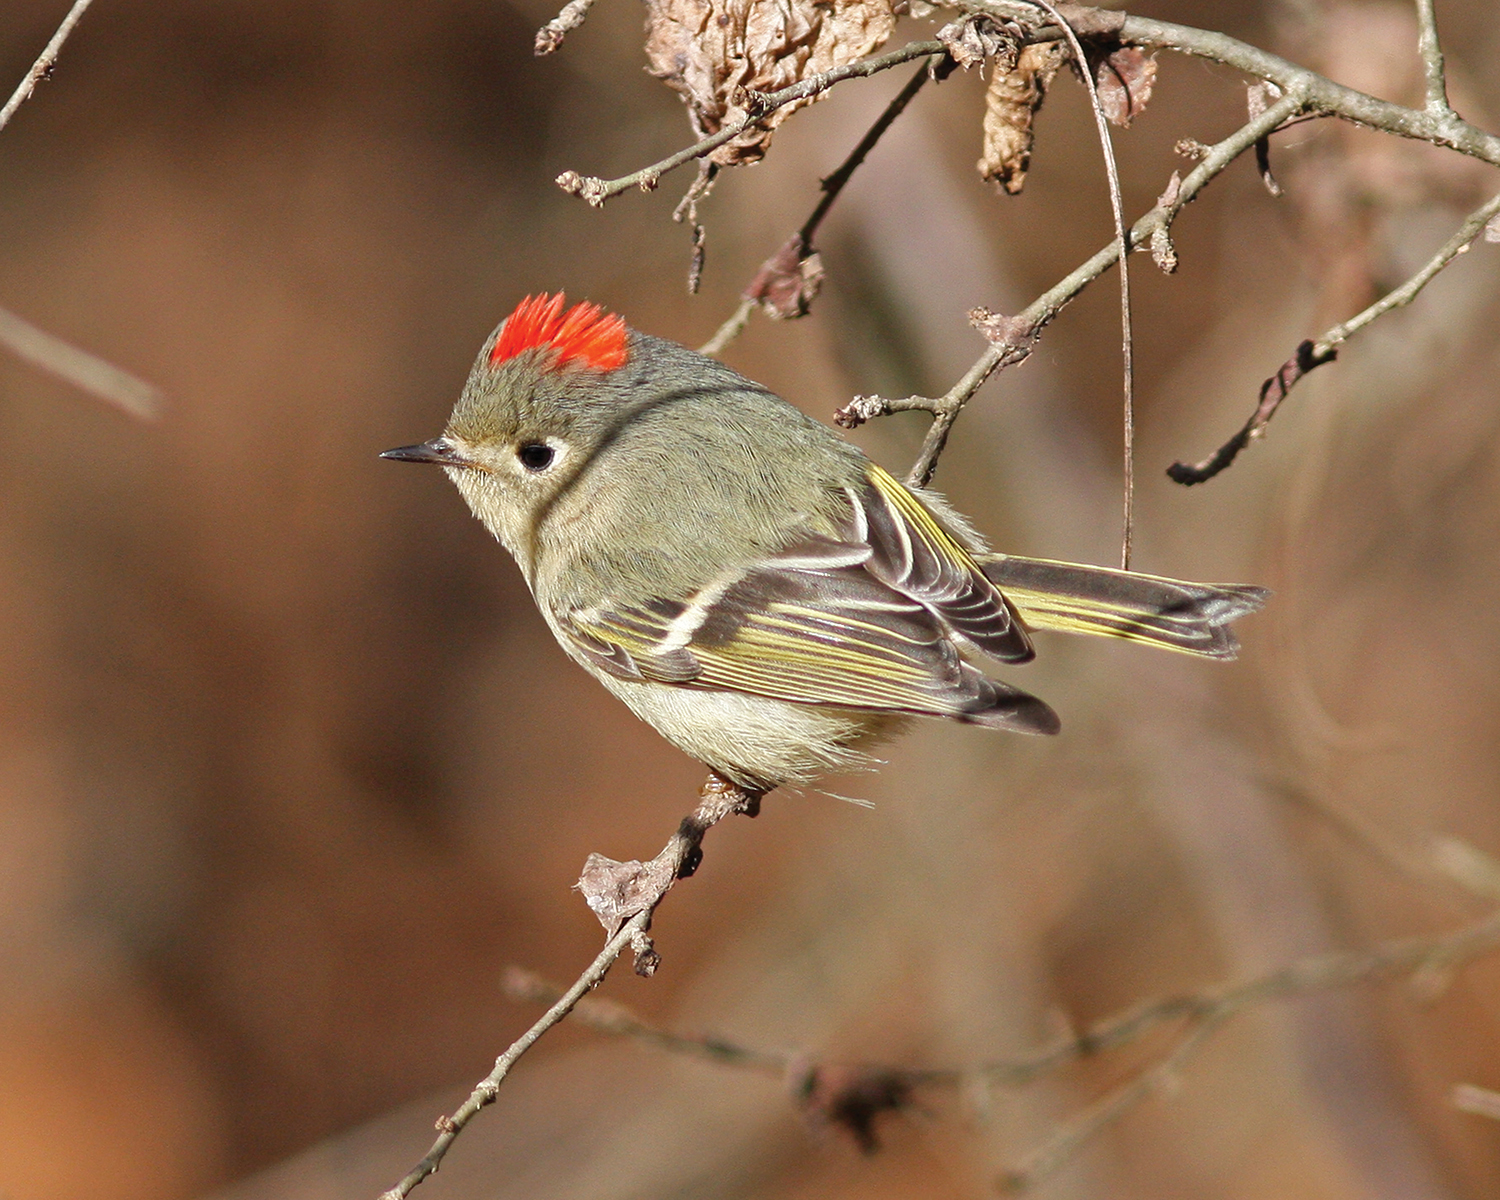 Ruby-crowned kinglet; taken at the Governor Mike Huckabee Nature Center, Pine Bluff.